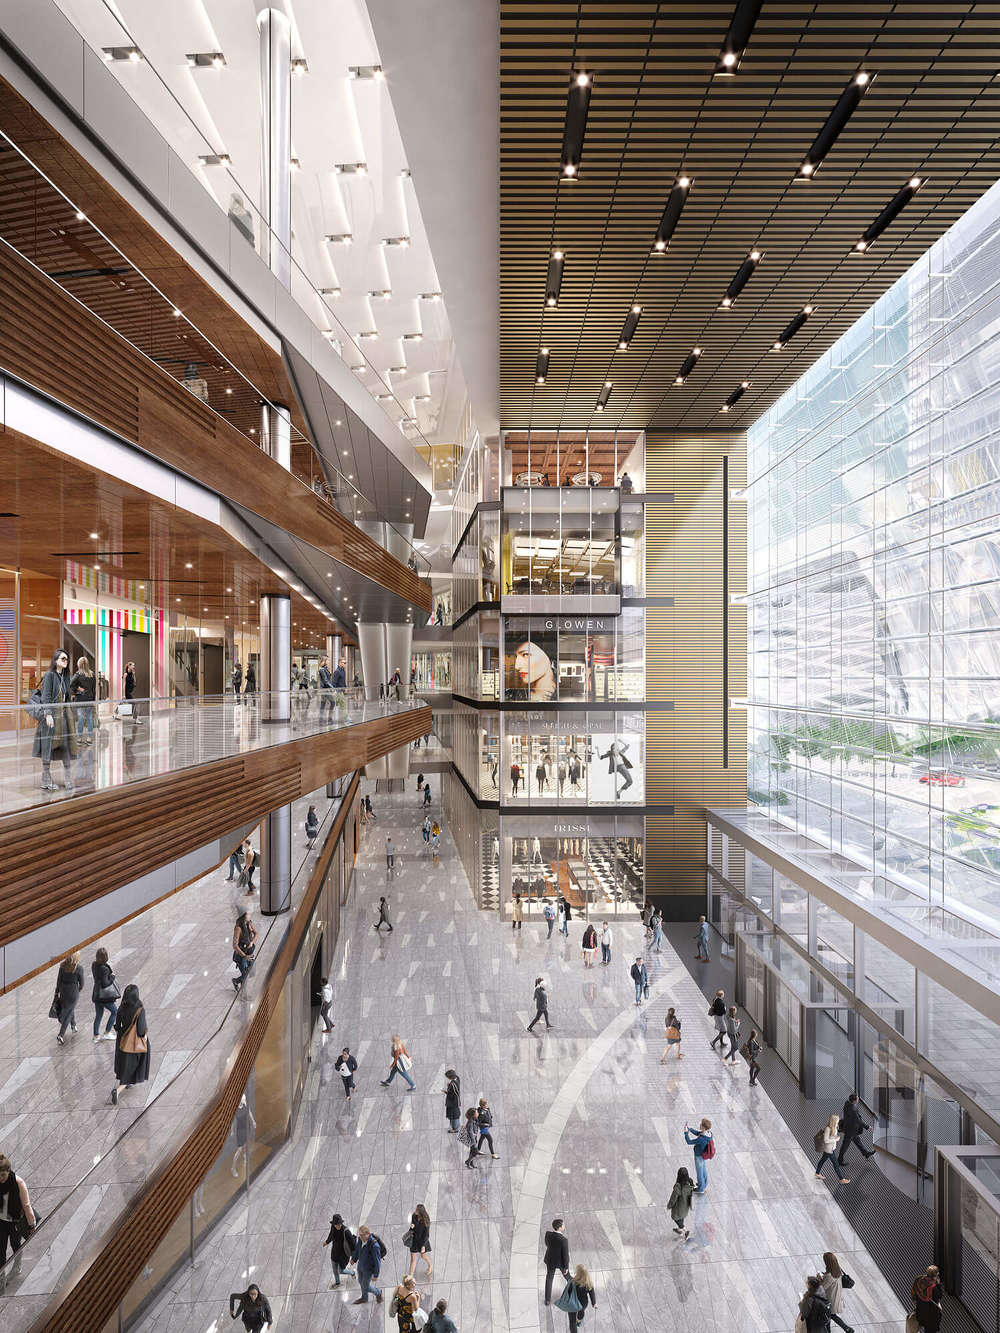 Related Companies, Oxford Properties Group photo.